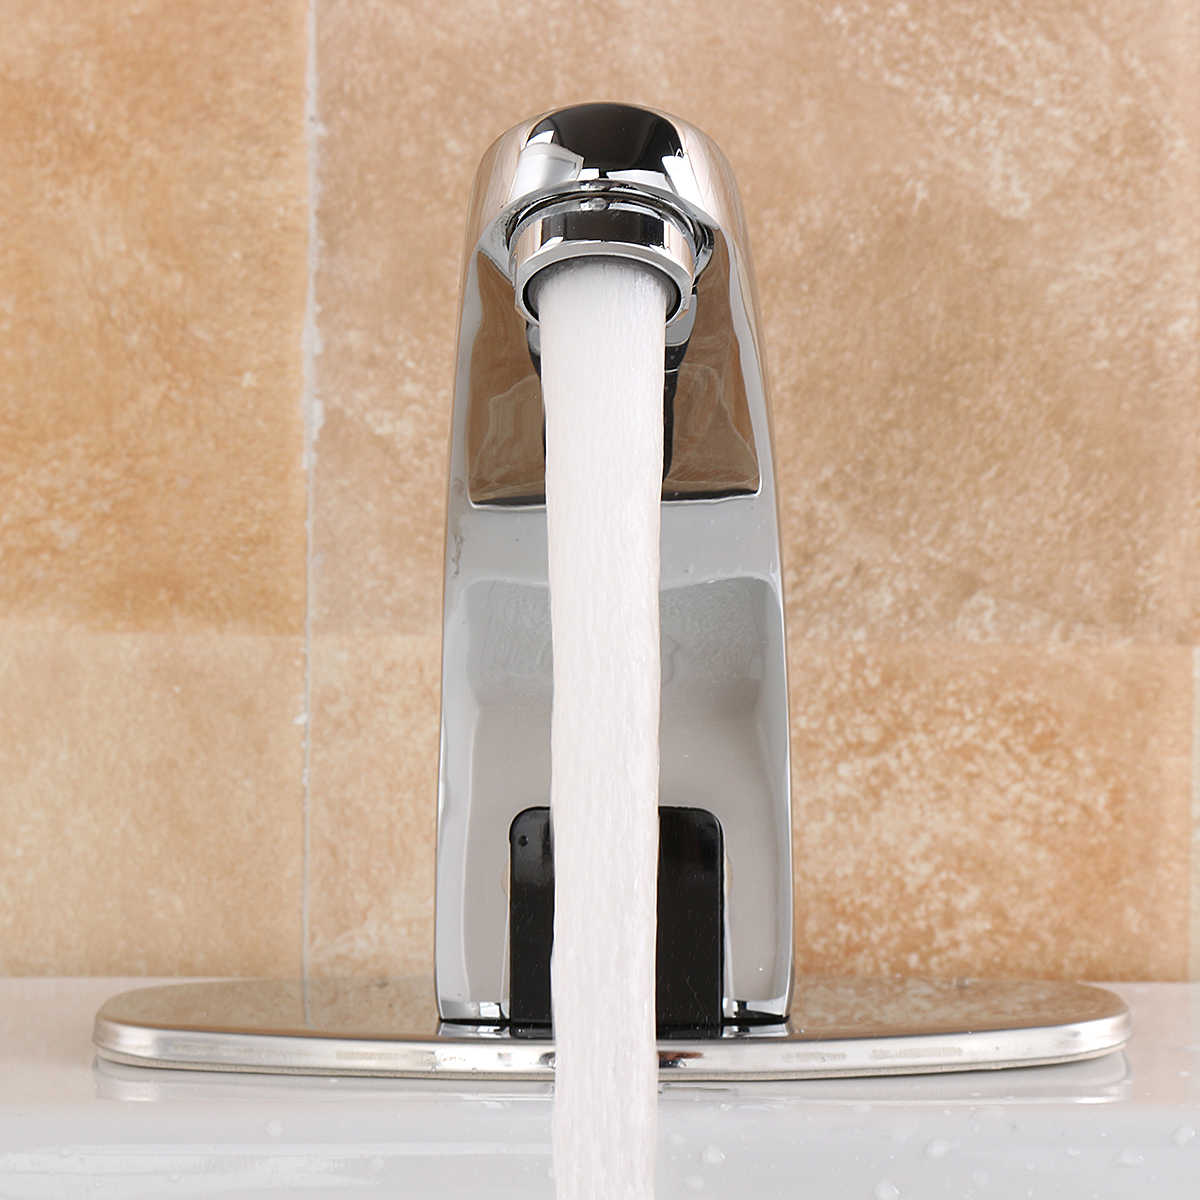 Ambest Touch Free Automatic Infrared Sensor Sink